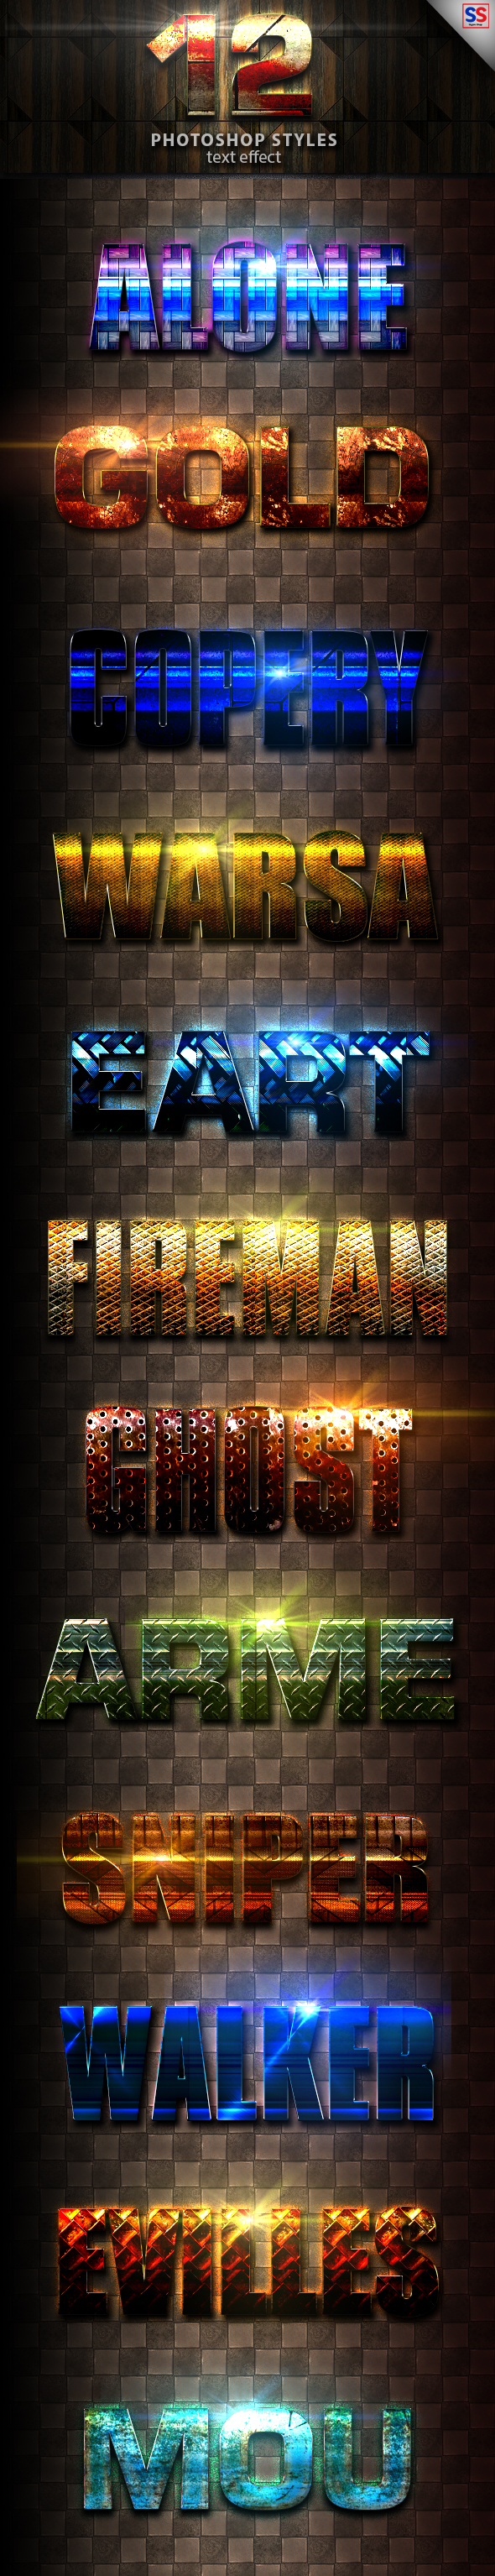 12 Light Photoshop text Effect vol 17 - Text Effects Styles